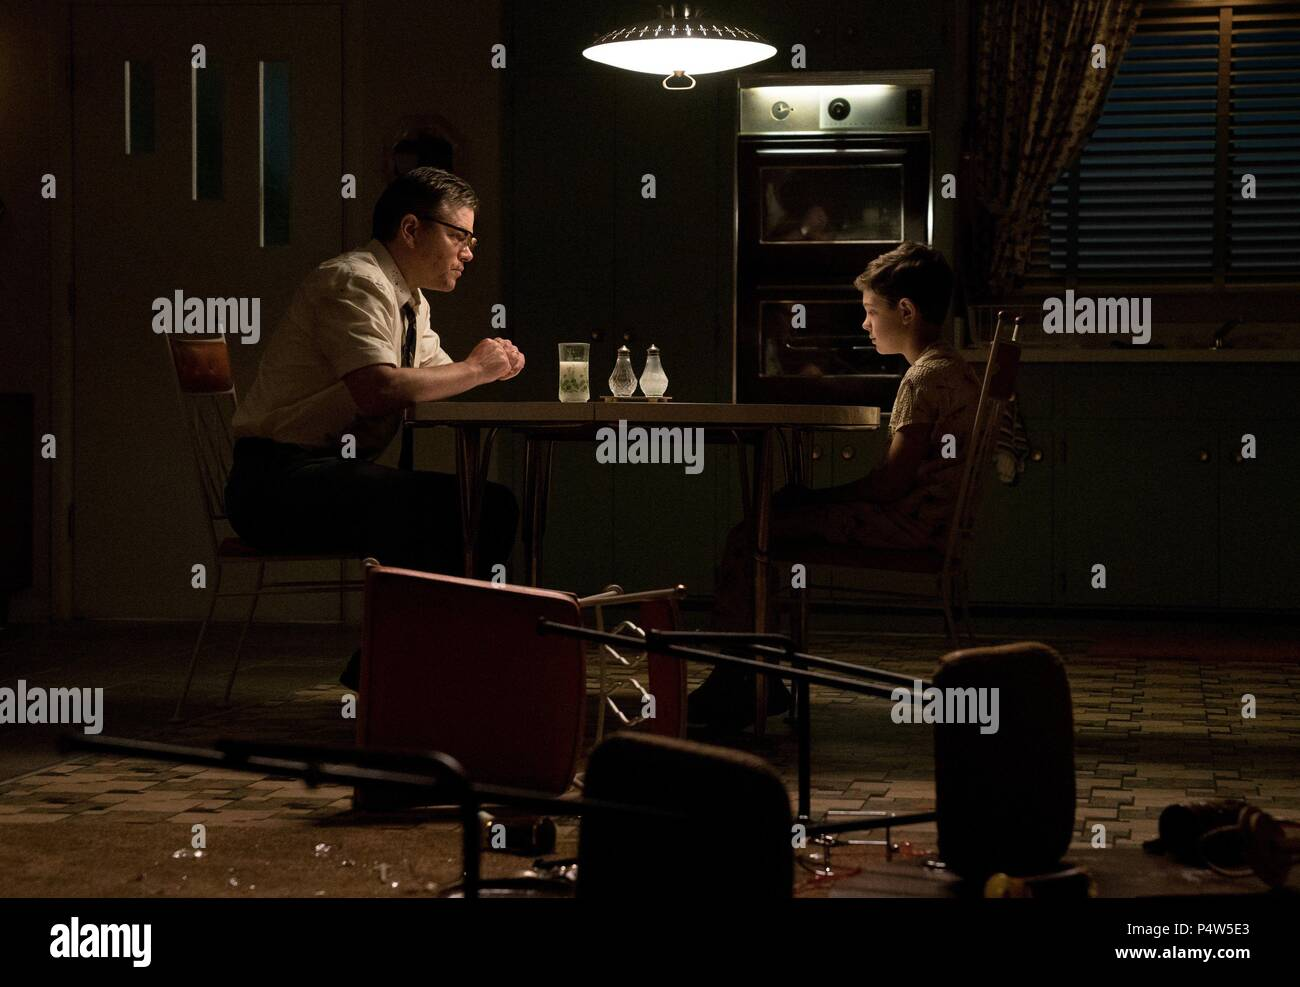 Original Film Title: SUBURBICON.  English Title: SUBURBICON.  Film Director: GEORGE CLOONEY.  Year: 2017.  Stars: MATT DAMON; NOAH JUPE. Credit: BLACK BEAR PICTURES / GAYLE, HILARY BRONWYN / Album - Stock Image